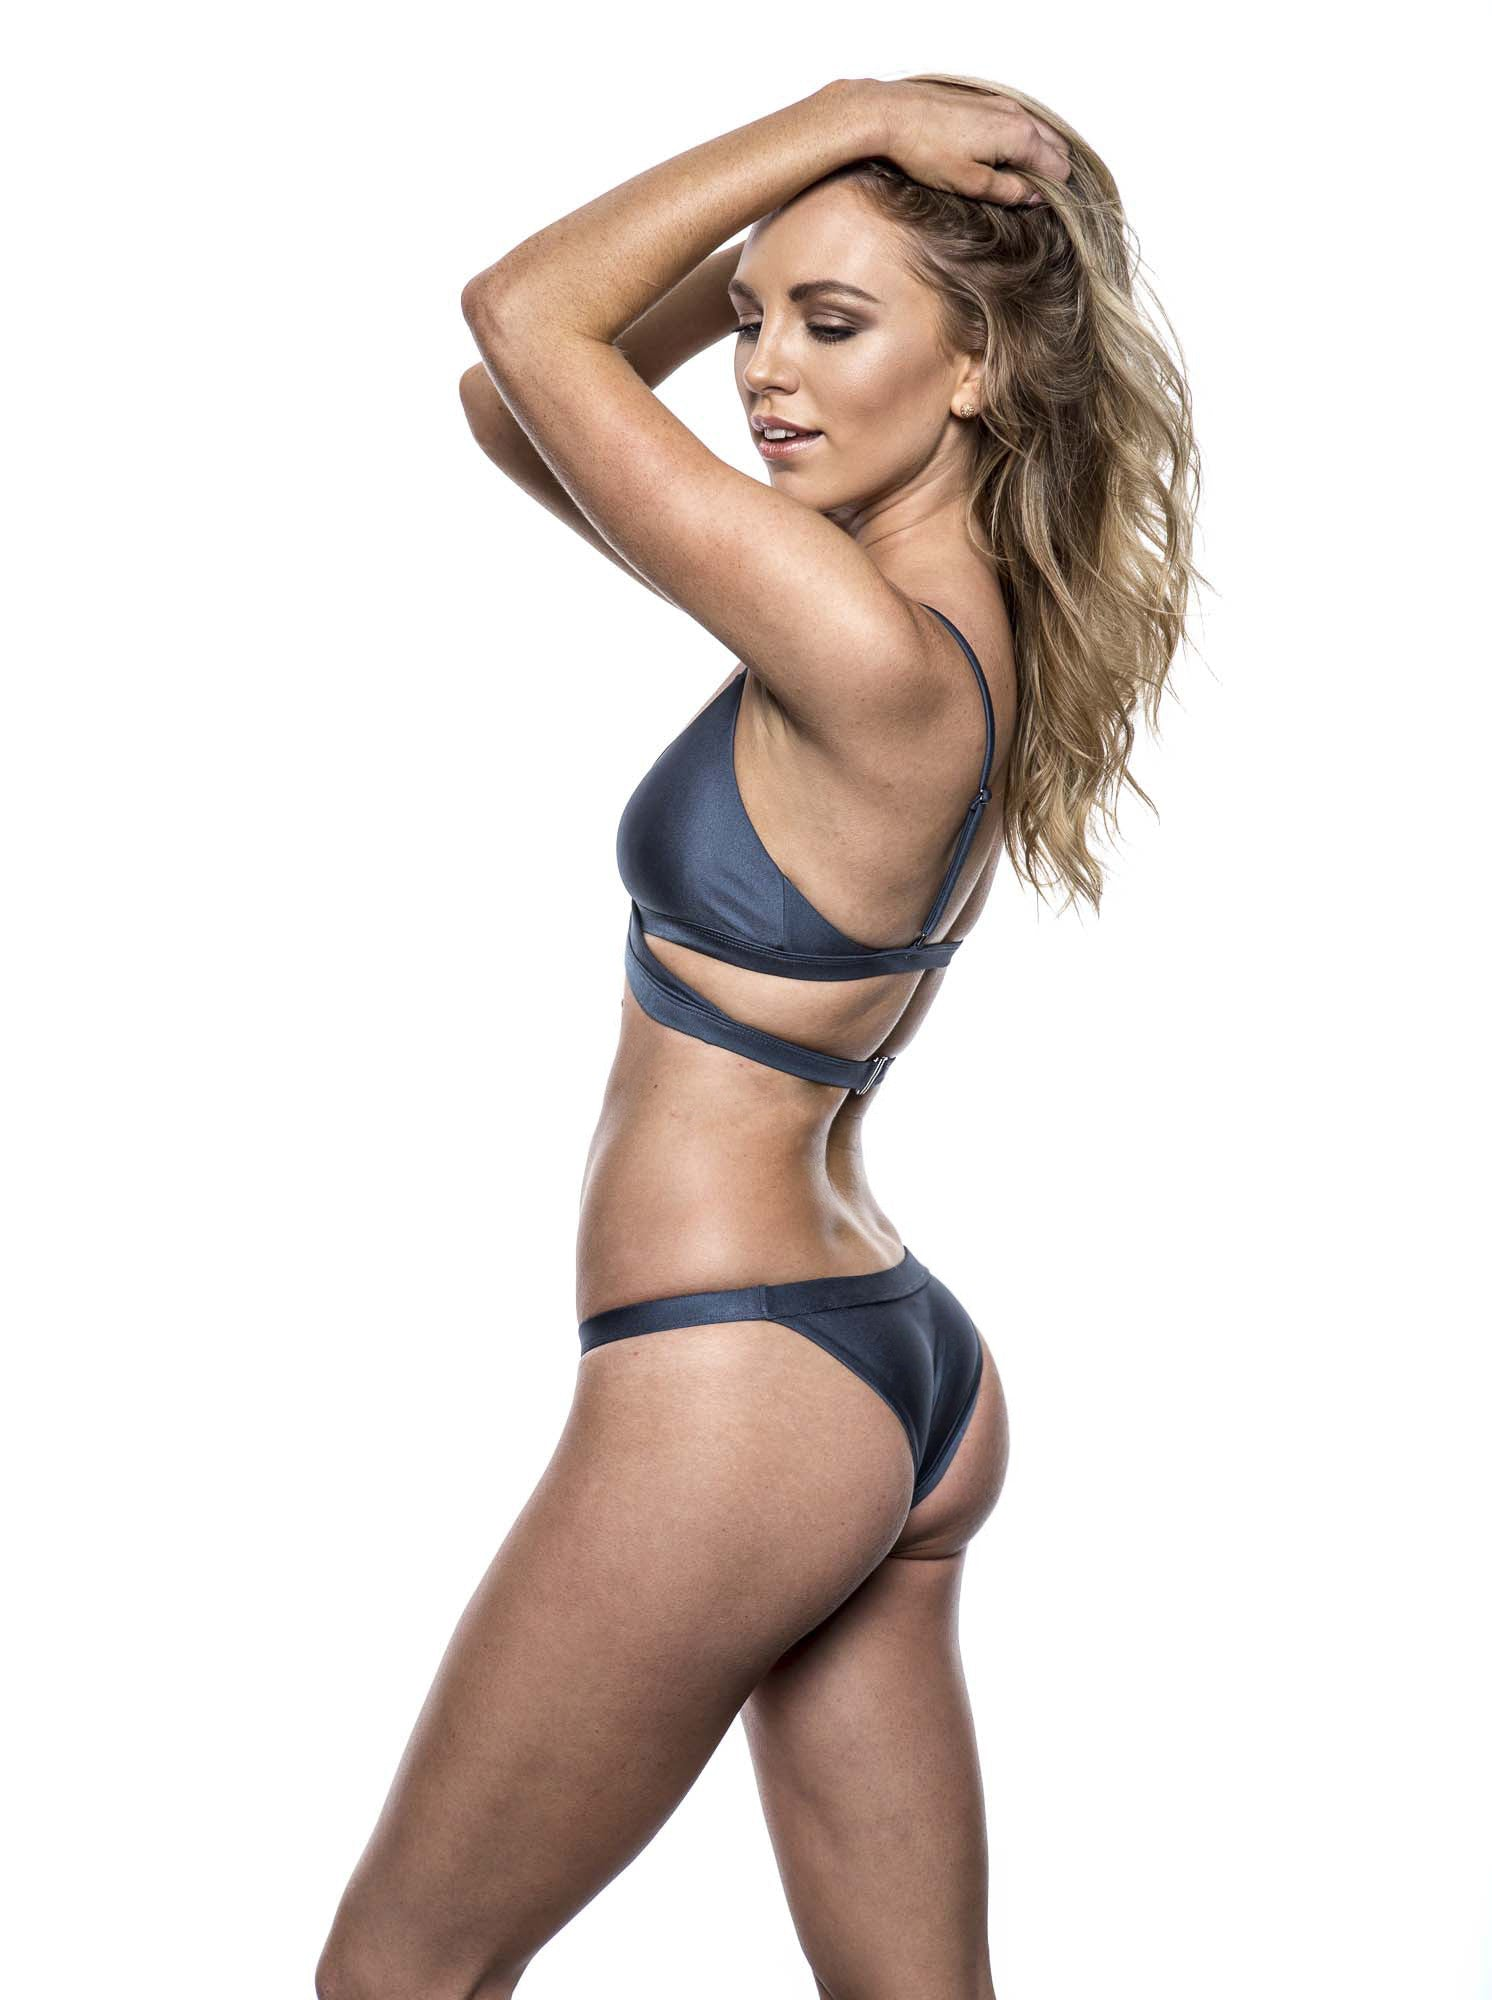 Reset swimwear that's a wrap bikini in steel blue